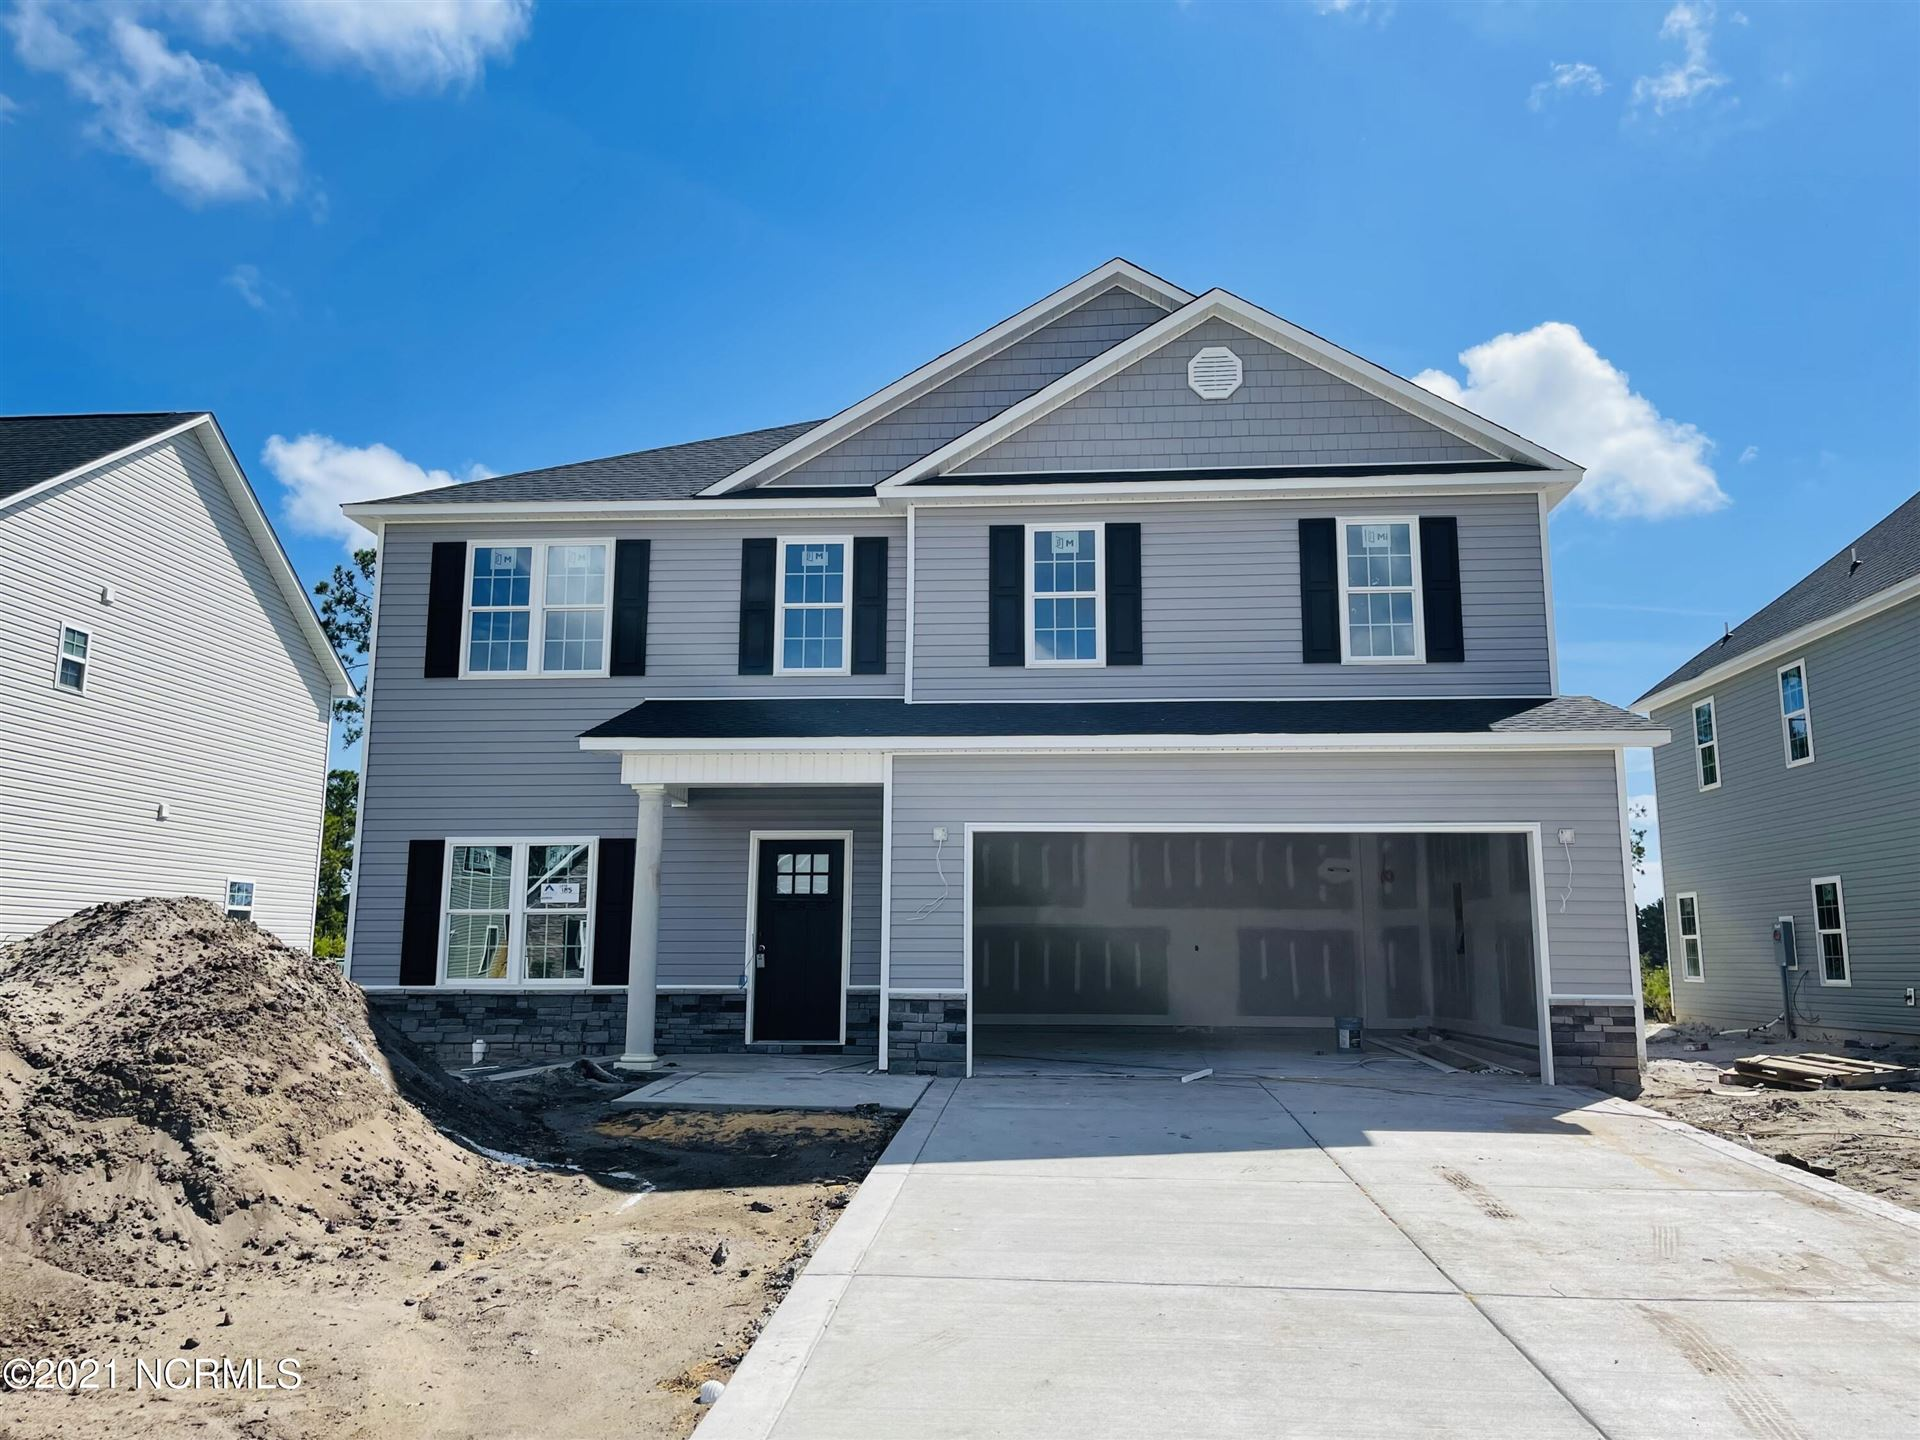 Photo of 543 Transom Way, Sneads Ferry, NC 28460 (MLS # 100263326)